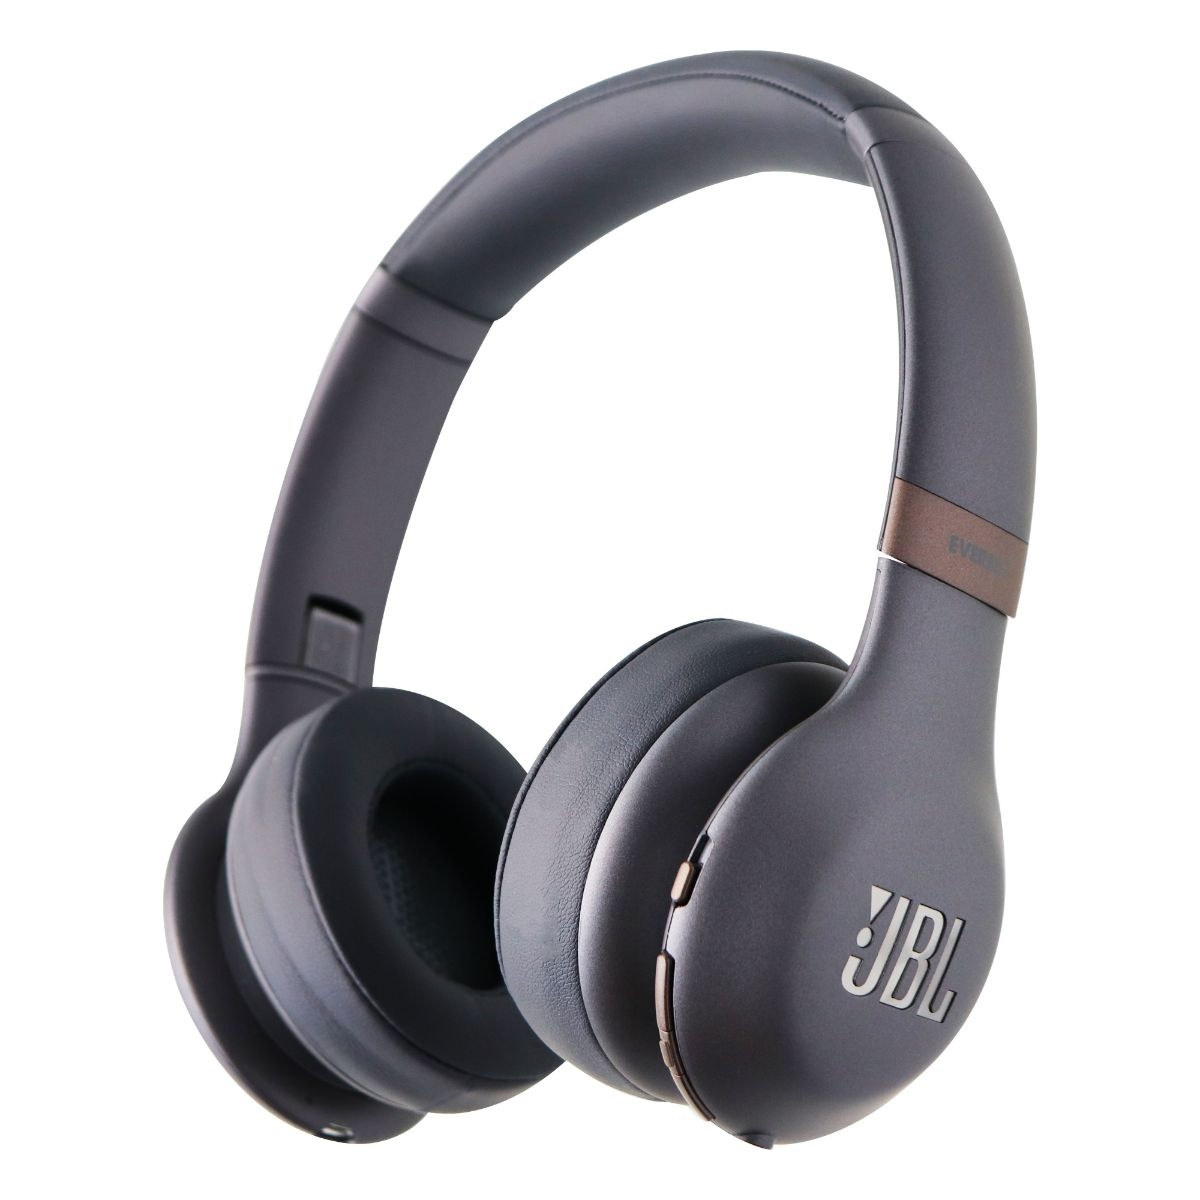 JBL Everest 310GA Bluetooth Headphones with Built-in Remote and Mic - Gunmetal